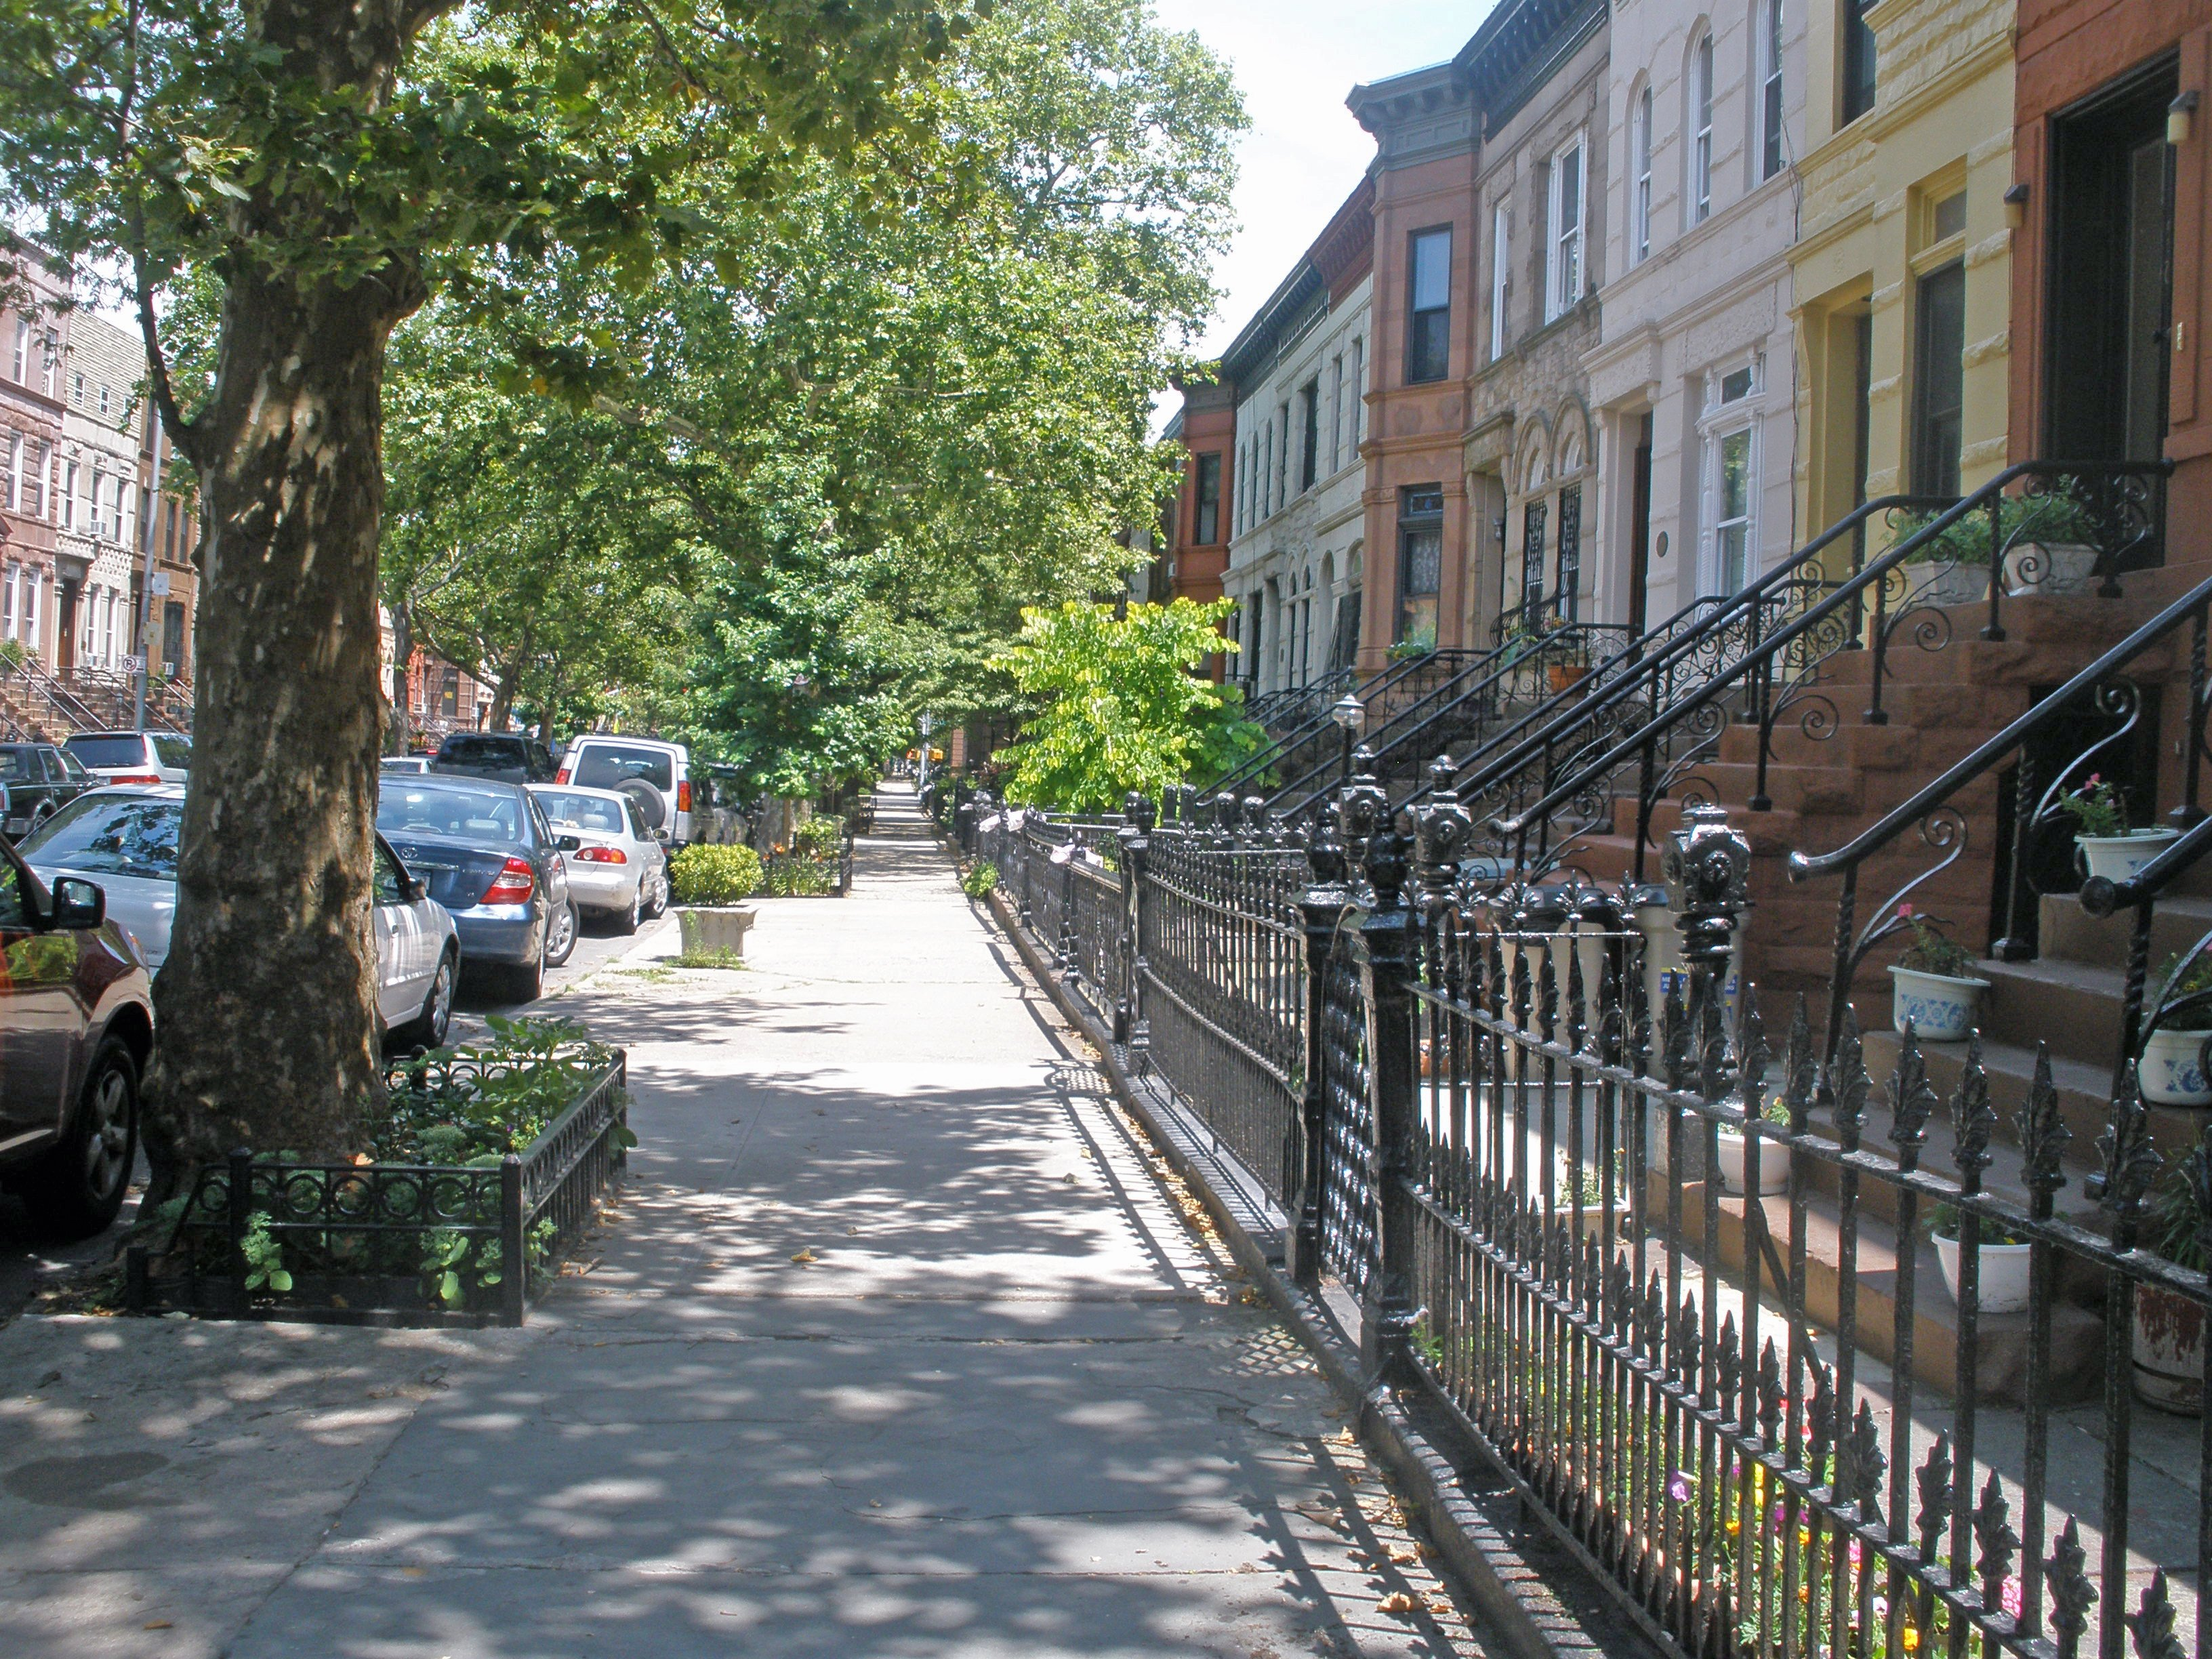 Bed stuy 1 bedroom apartment for rent brooklyn crg3115 for Stuyvesant apartments